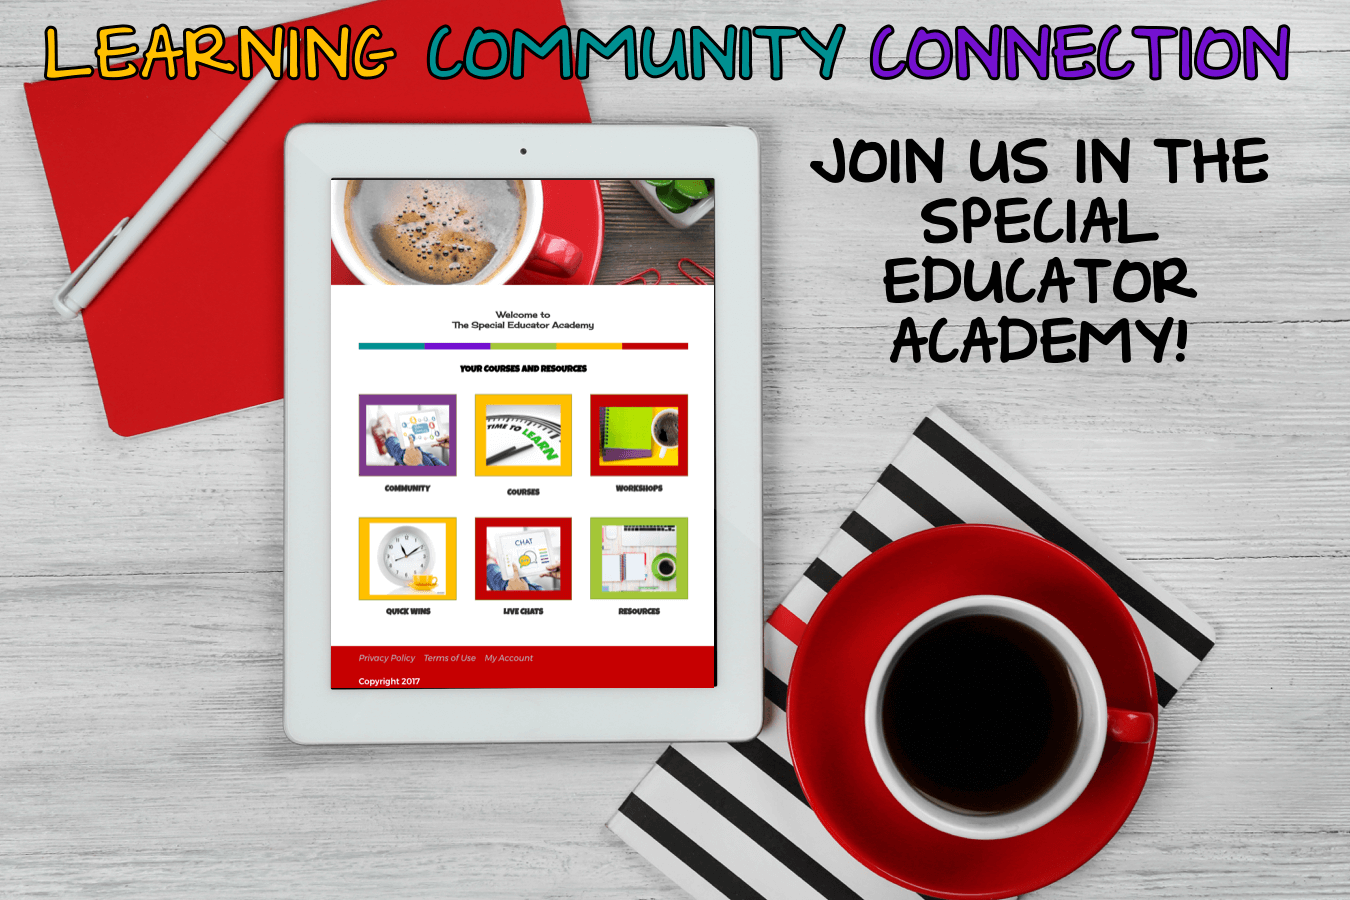 Learning Community Connection. Join us in the Special Educator Academy